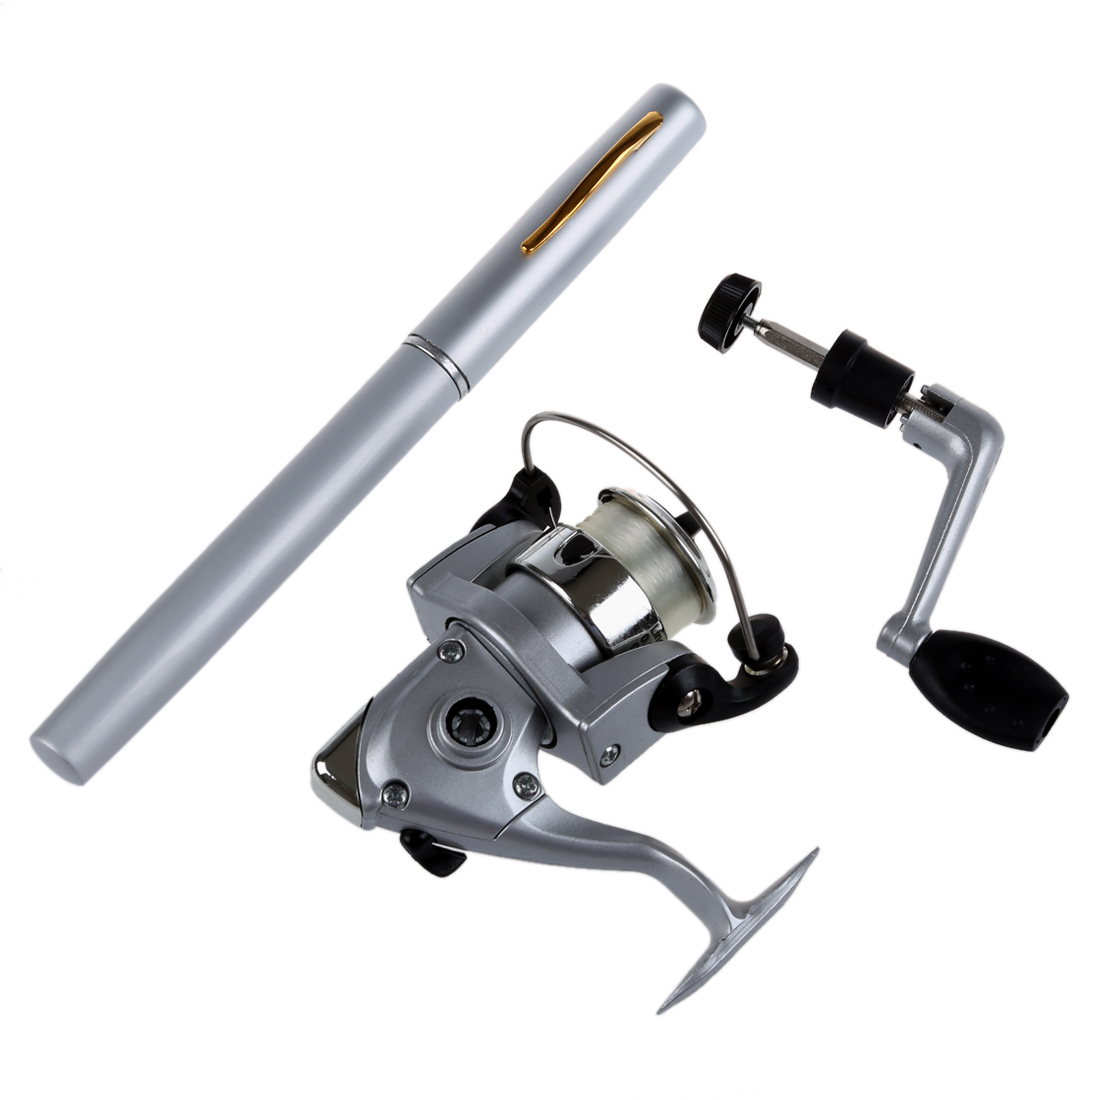 Saltwater Fishing Tackle Pen Shape Rod Pole & Reel Combos(silver)